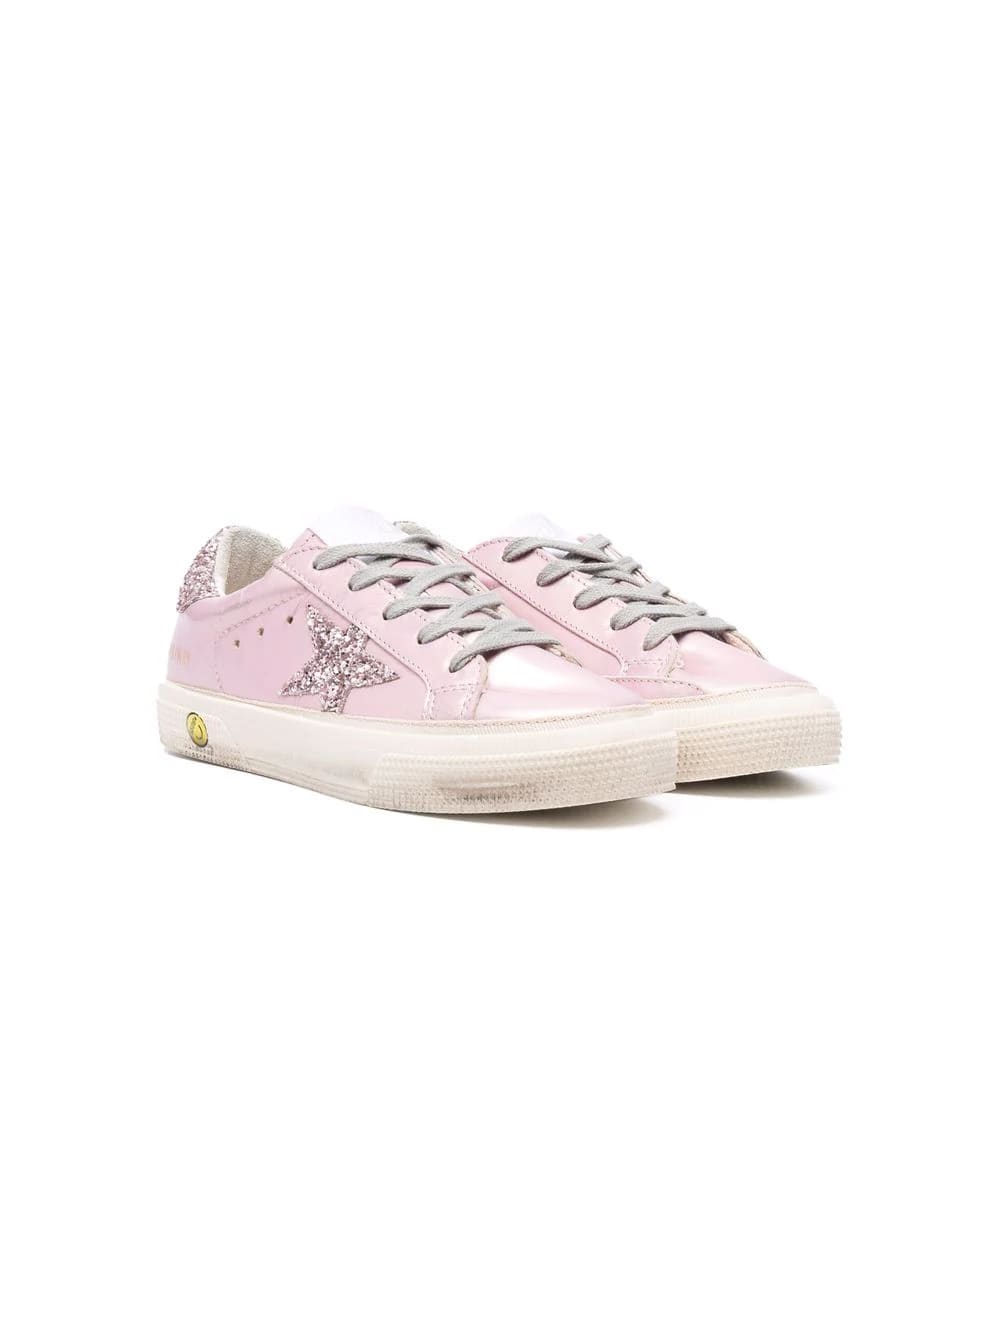 Golden Goose Junior Super-star Sneakers In Pink Laminated Leather With Glittered Star And Spoiler